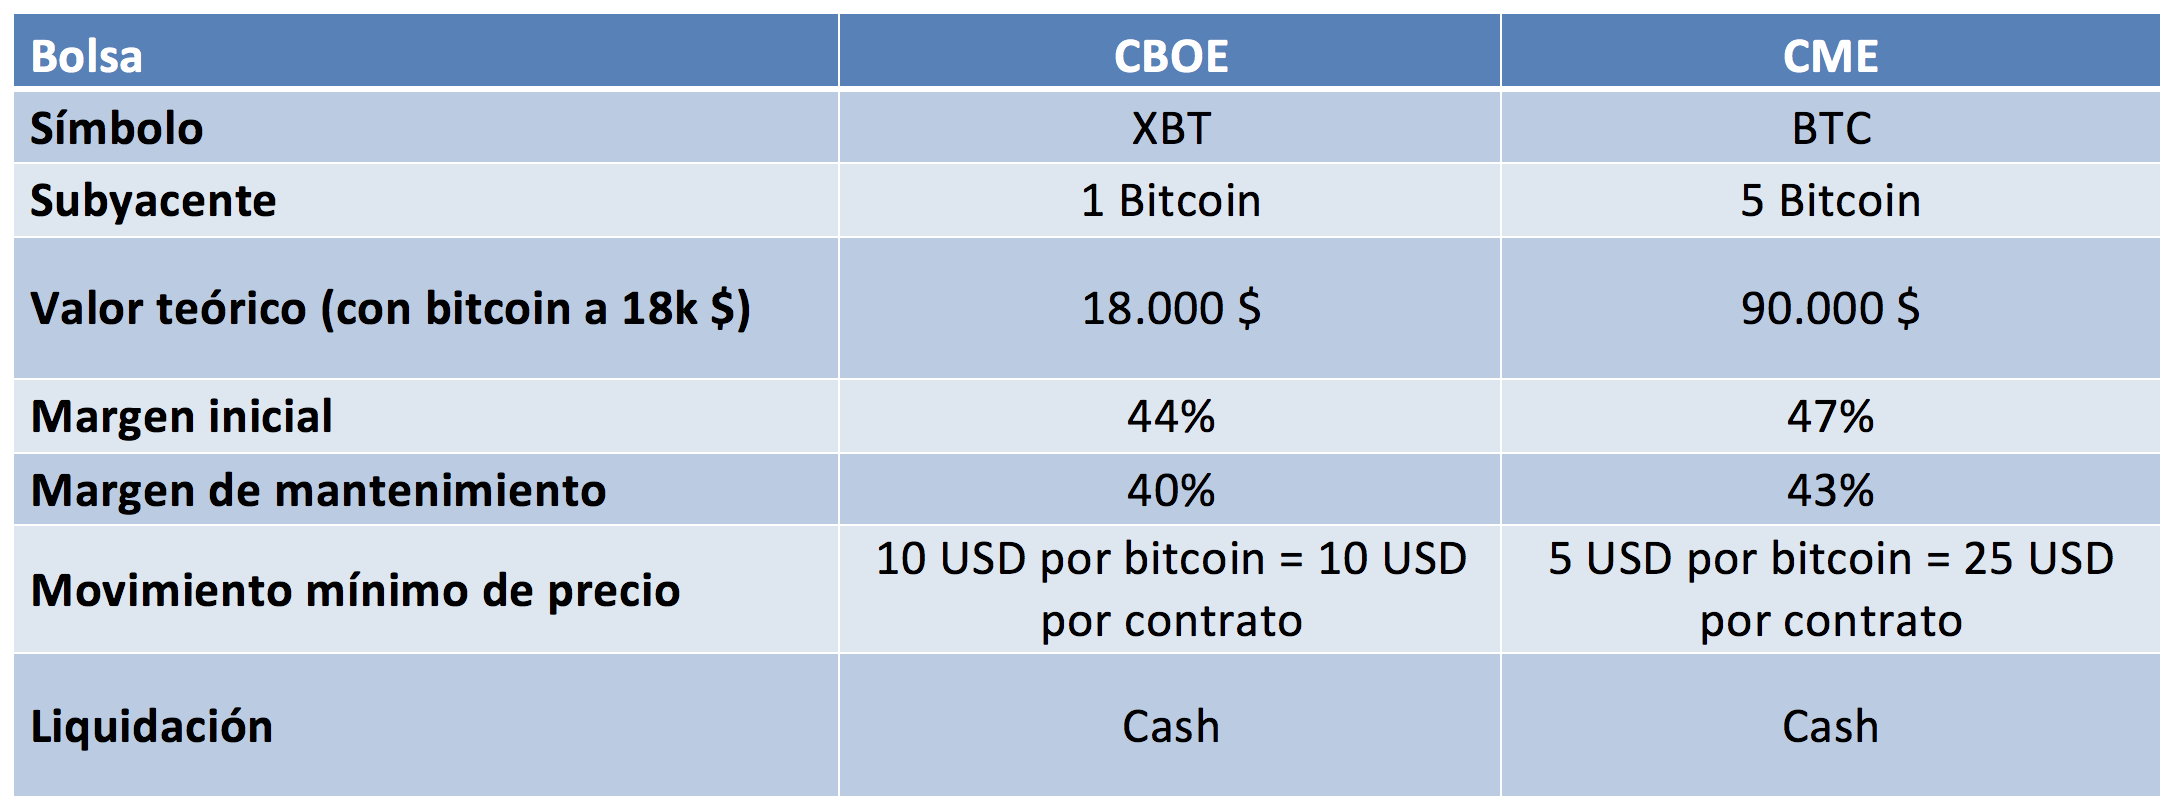 Comparative table of the characteristics of futures contracts on Bitcoin